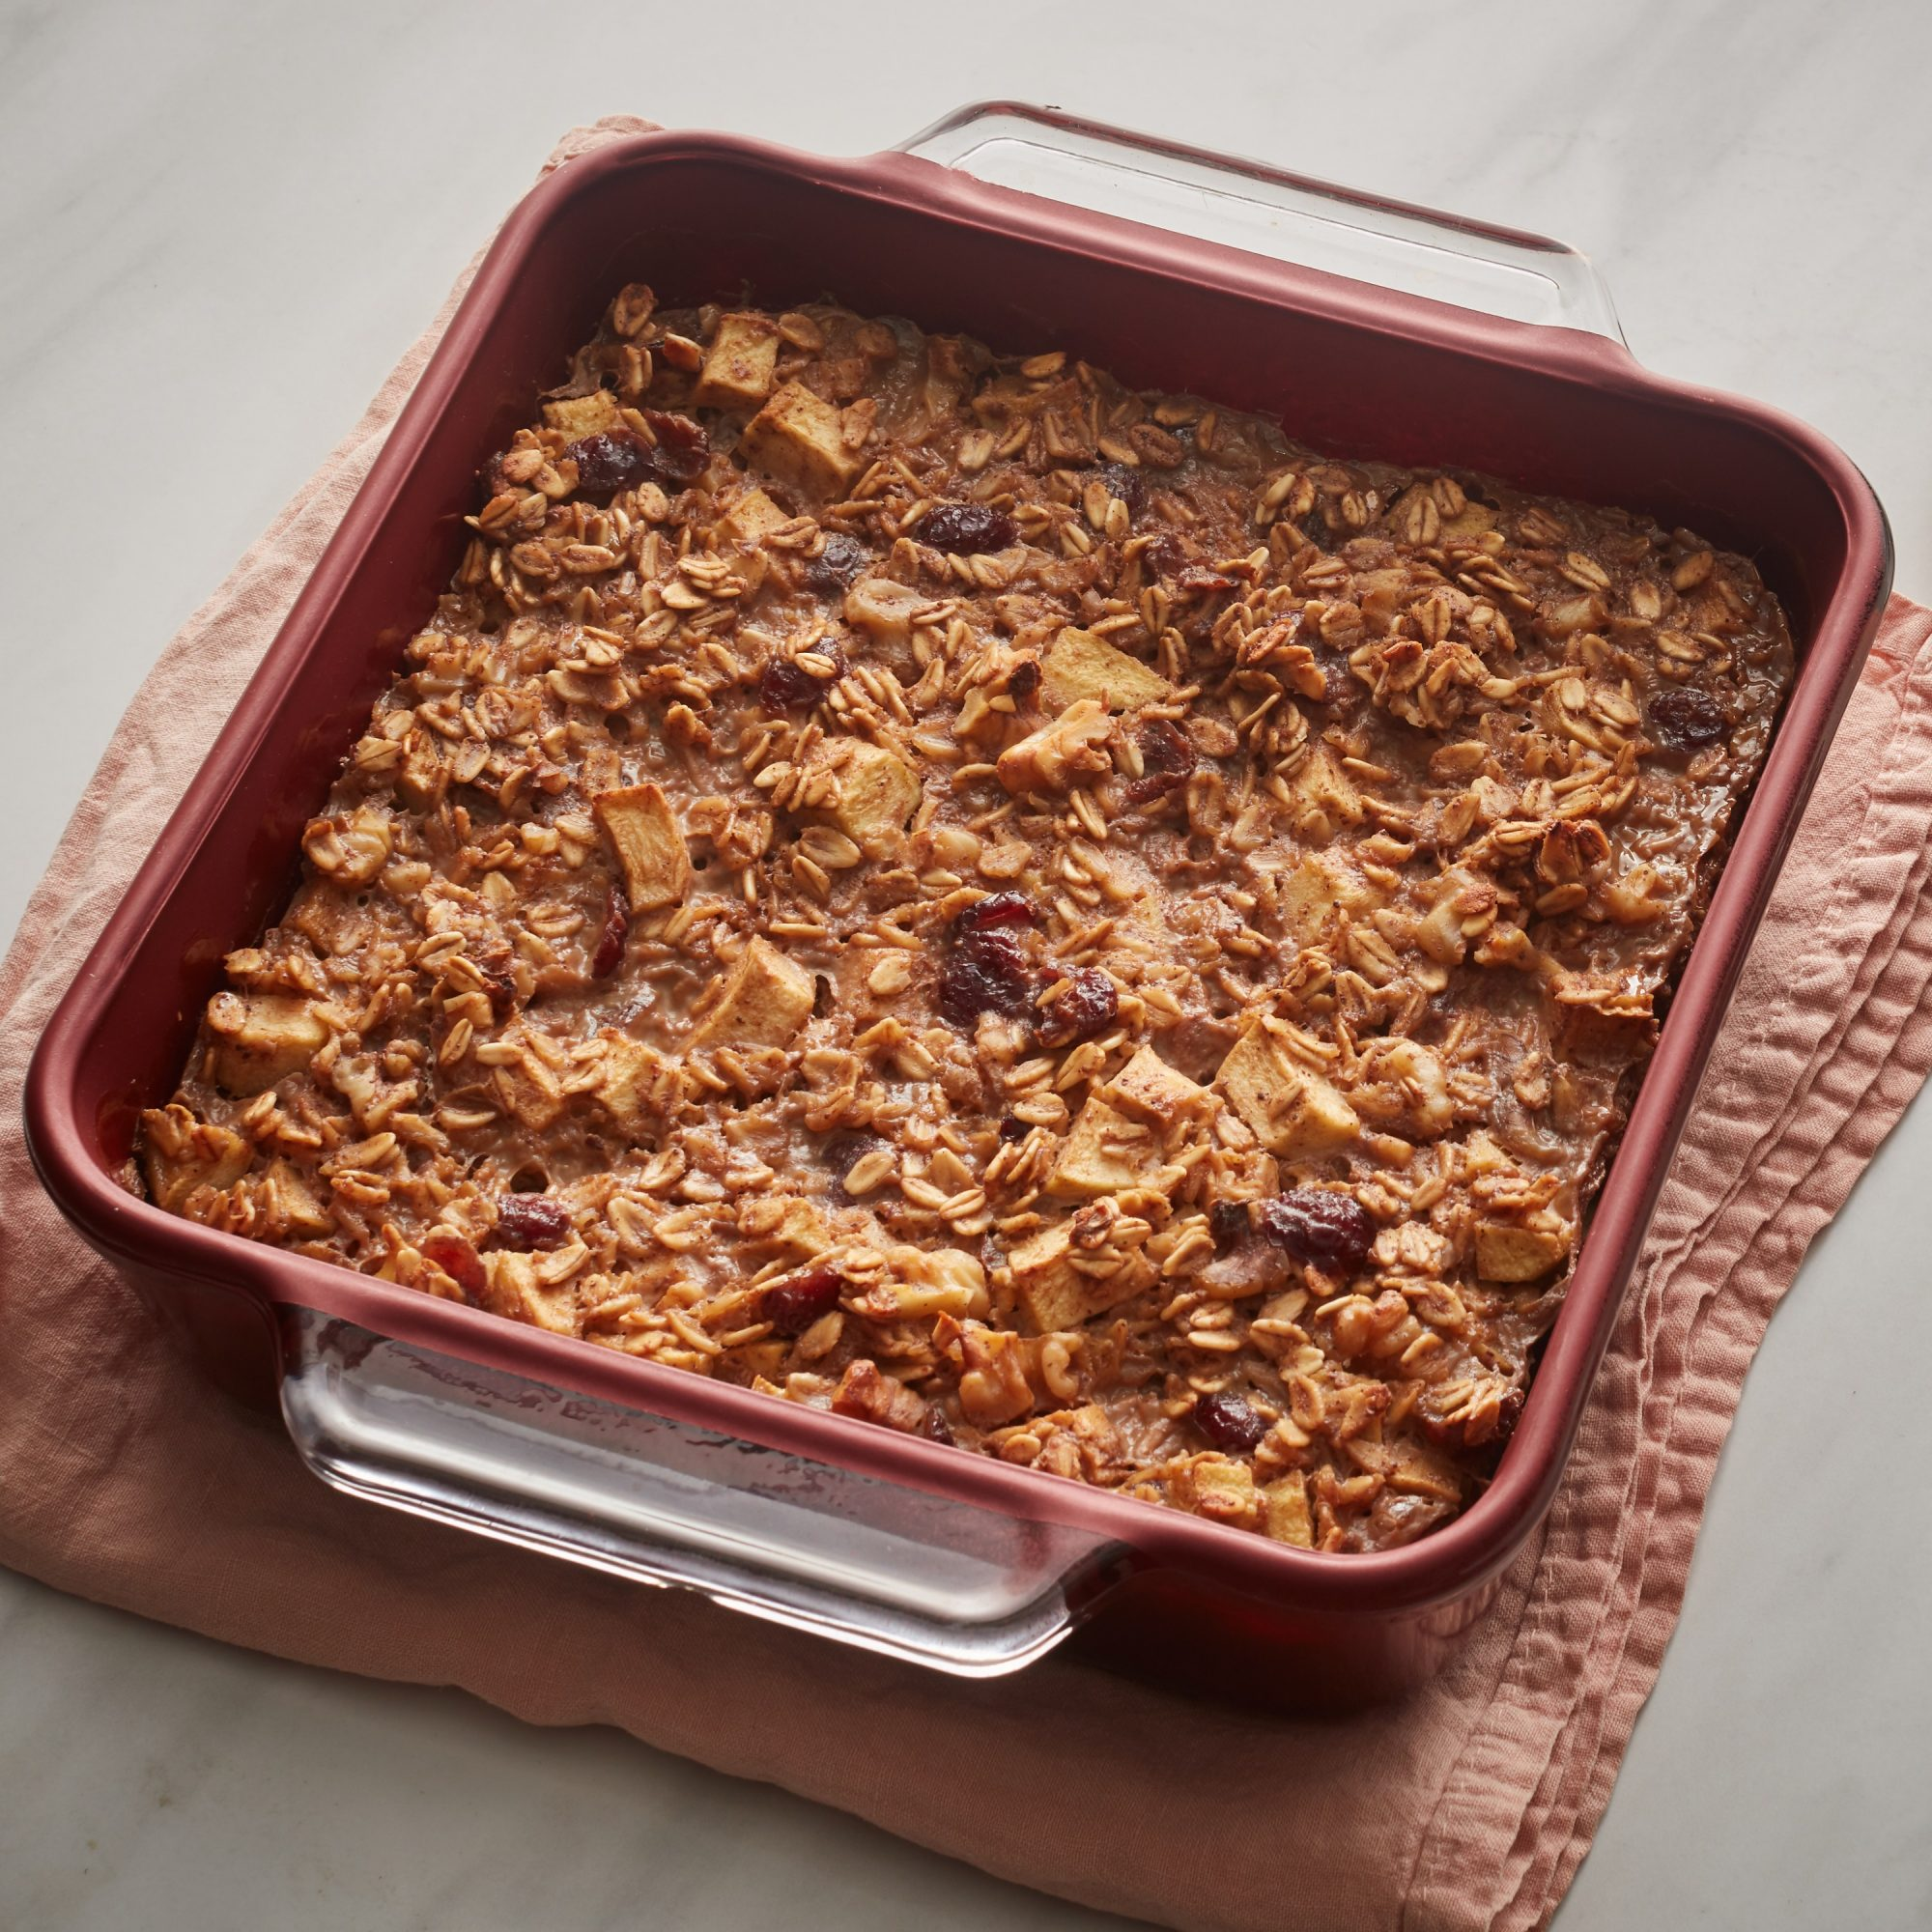 baked oatmeal with cranberries in a pink can